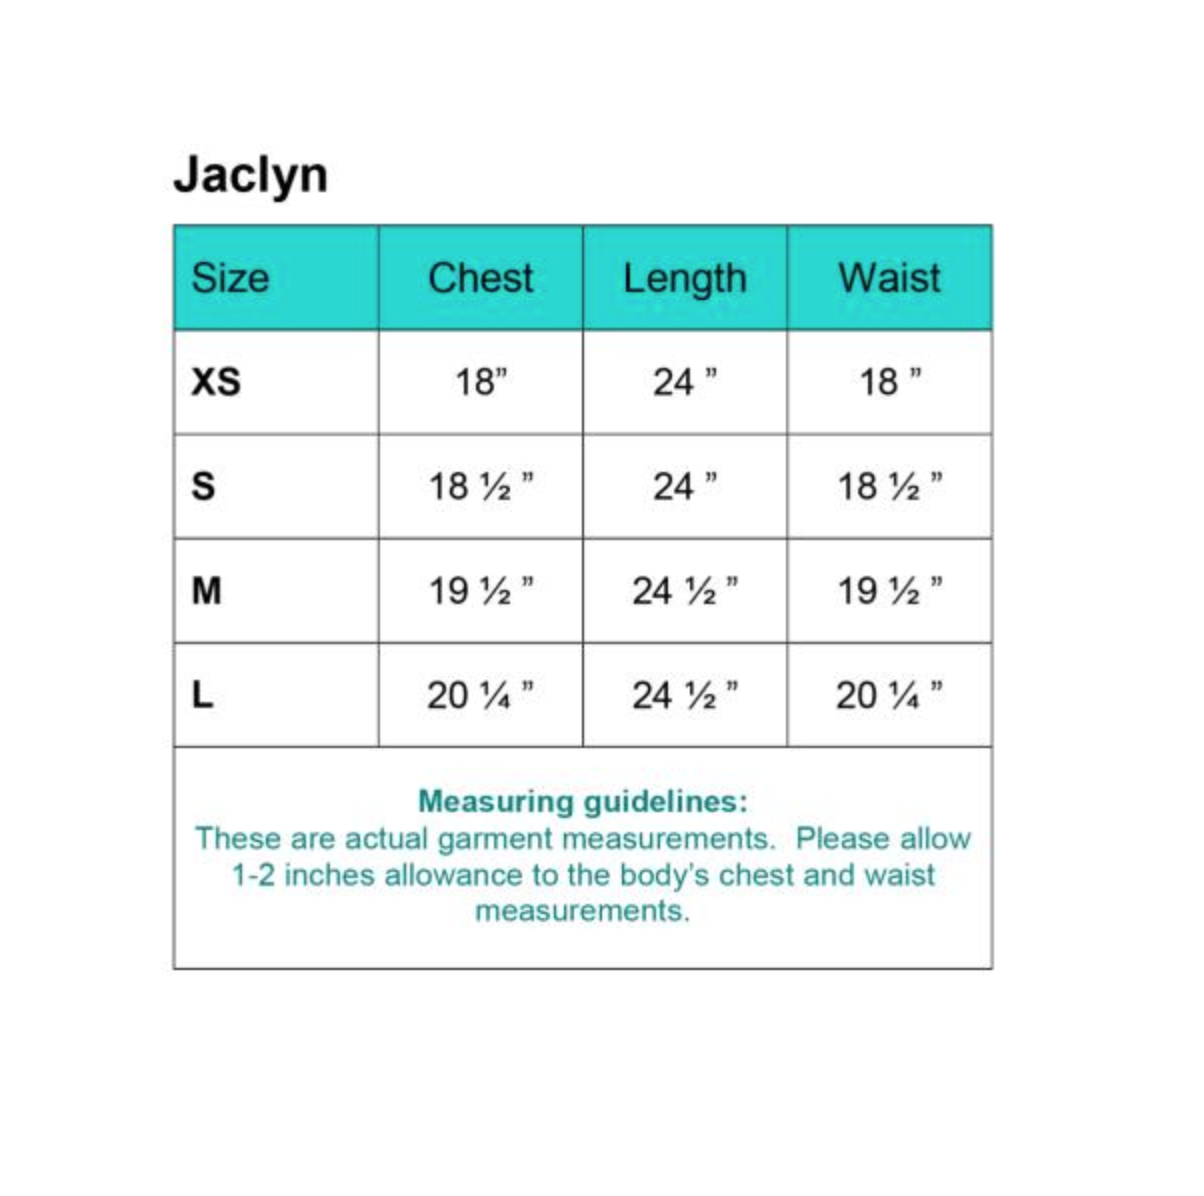 sizing-chart-jaclyn.png